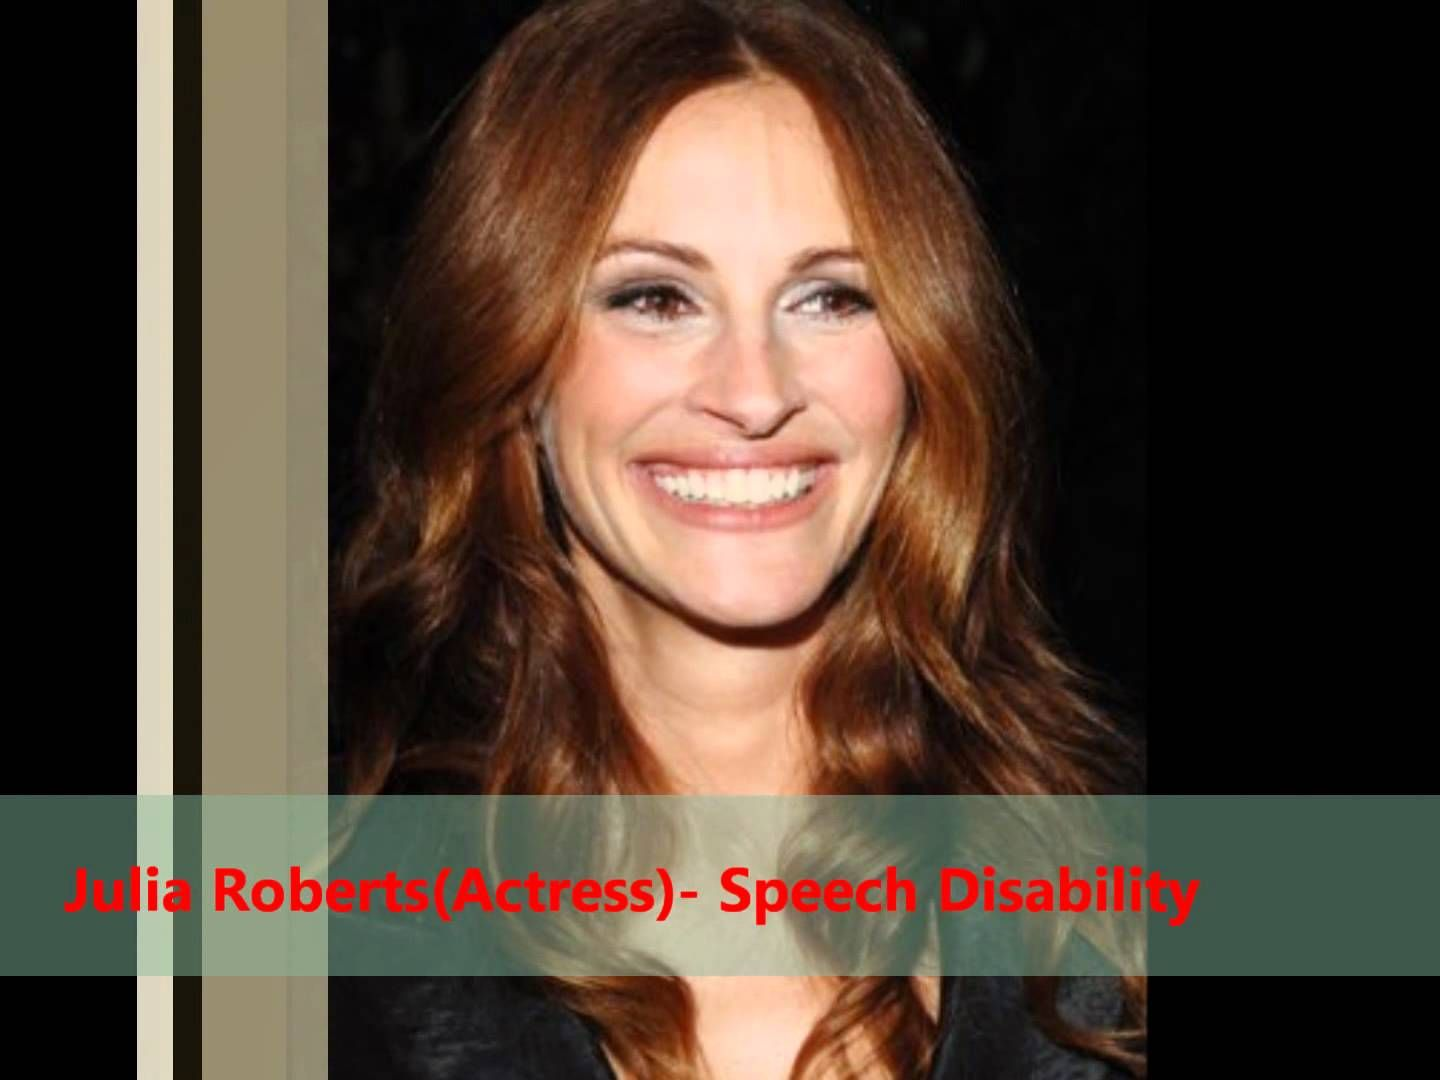 famous people with disabilities. | disabilities | pinterest | julia